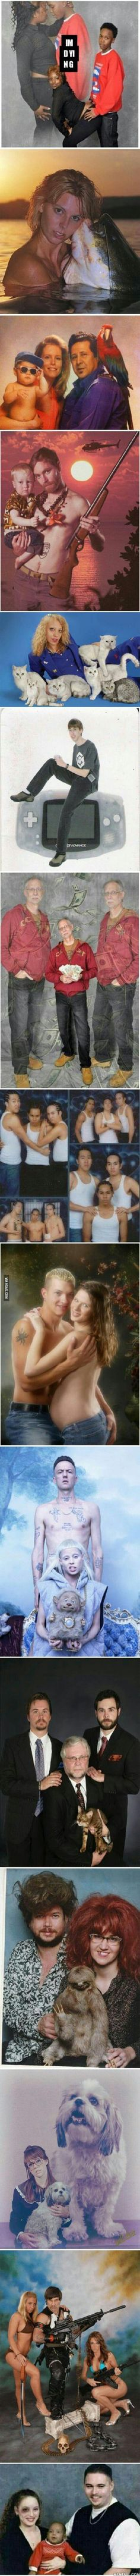 Pinning this because one of these pictures is just Die Antwoord chilling